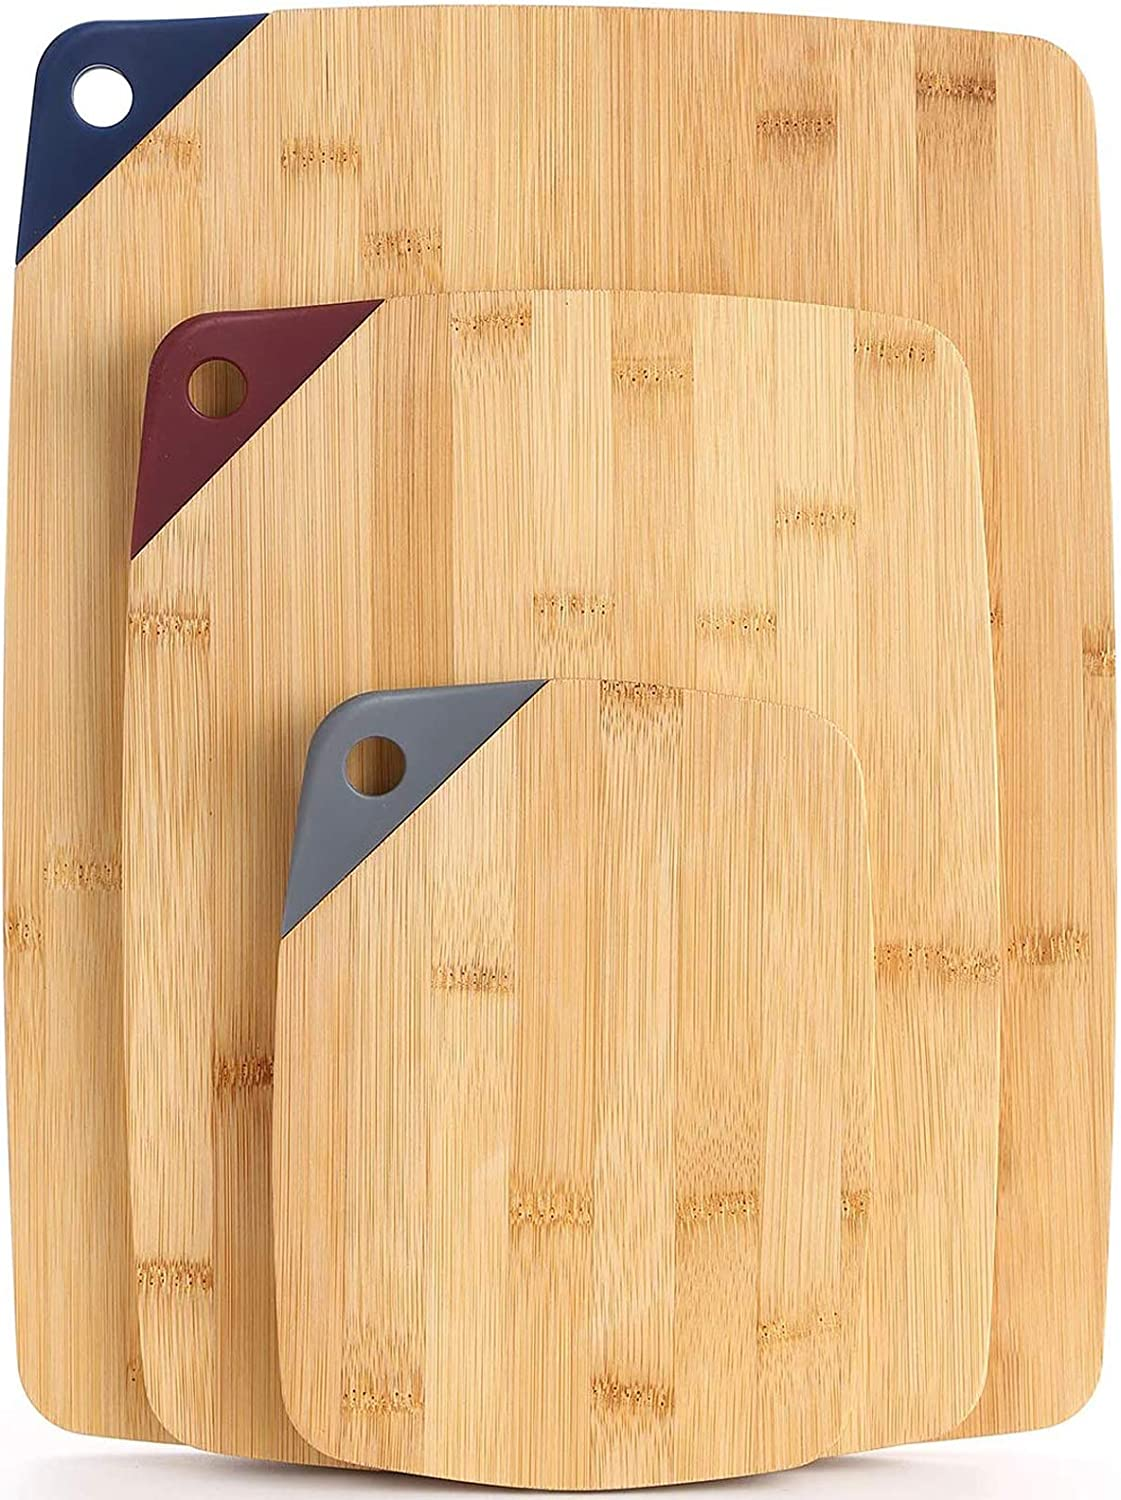 Super special Free shipping price Bamboo Cutting Board Set CHASUNG Wooden 3Piece -